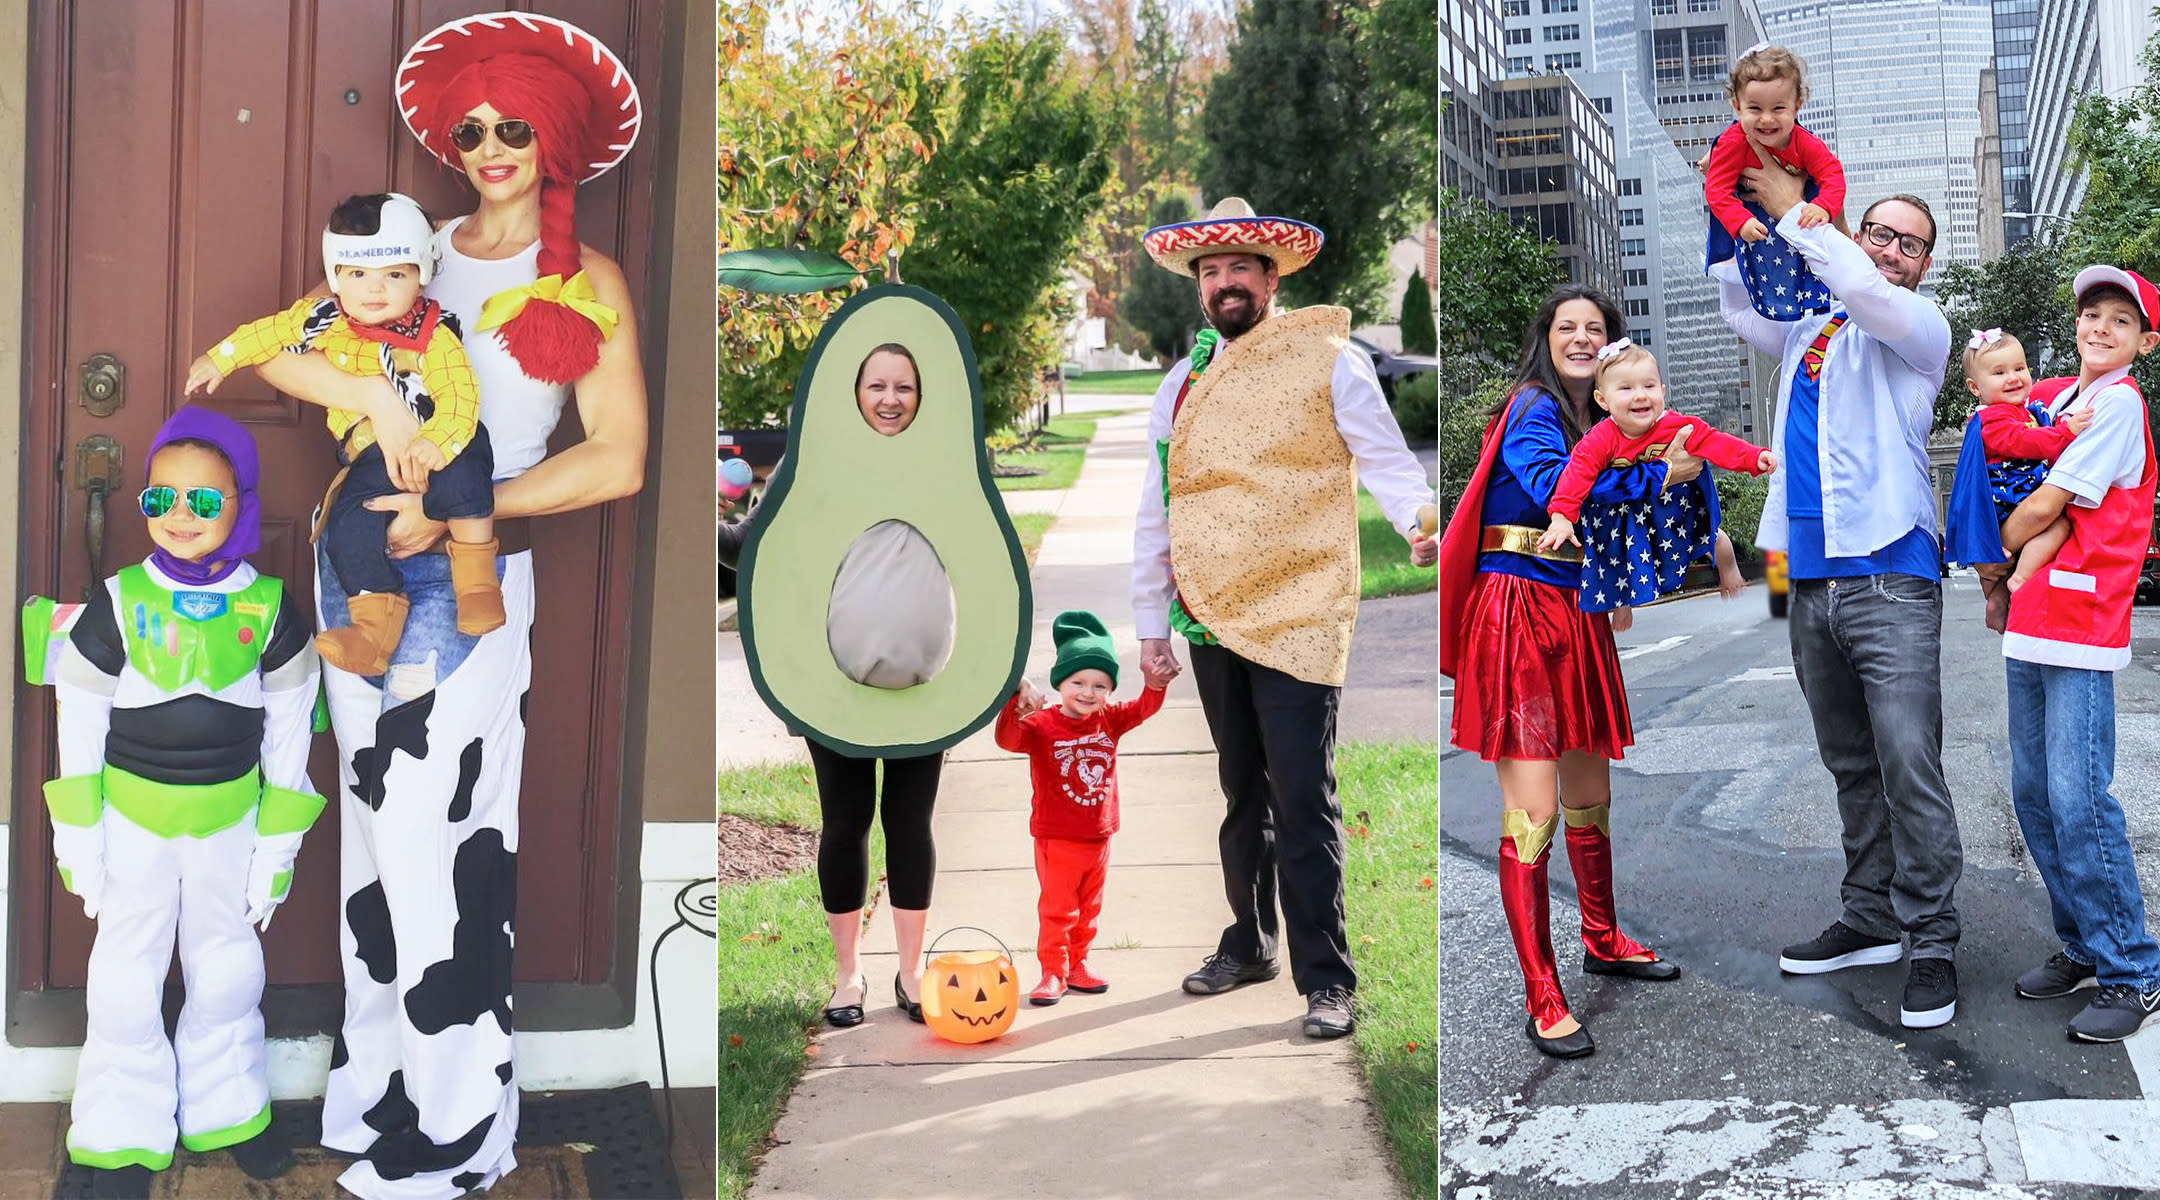 Halloween Group Costumes Scary.Best Family Halloween Costumes Ideas For 2018